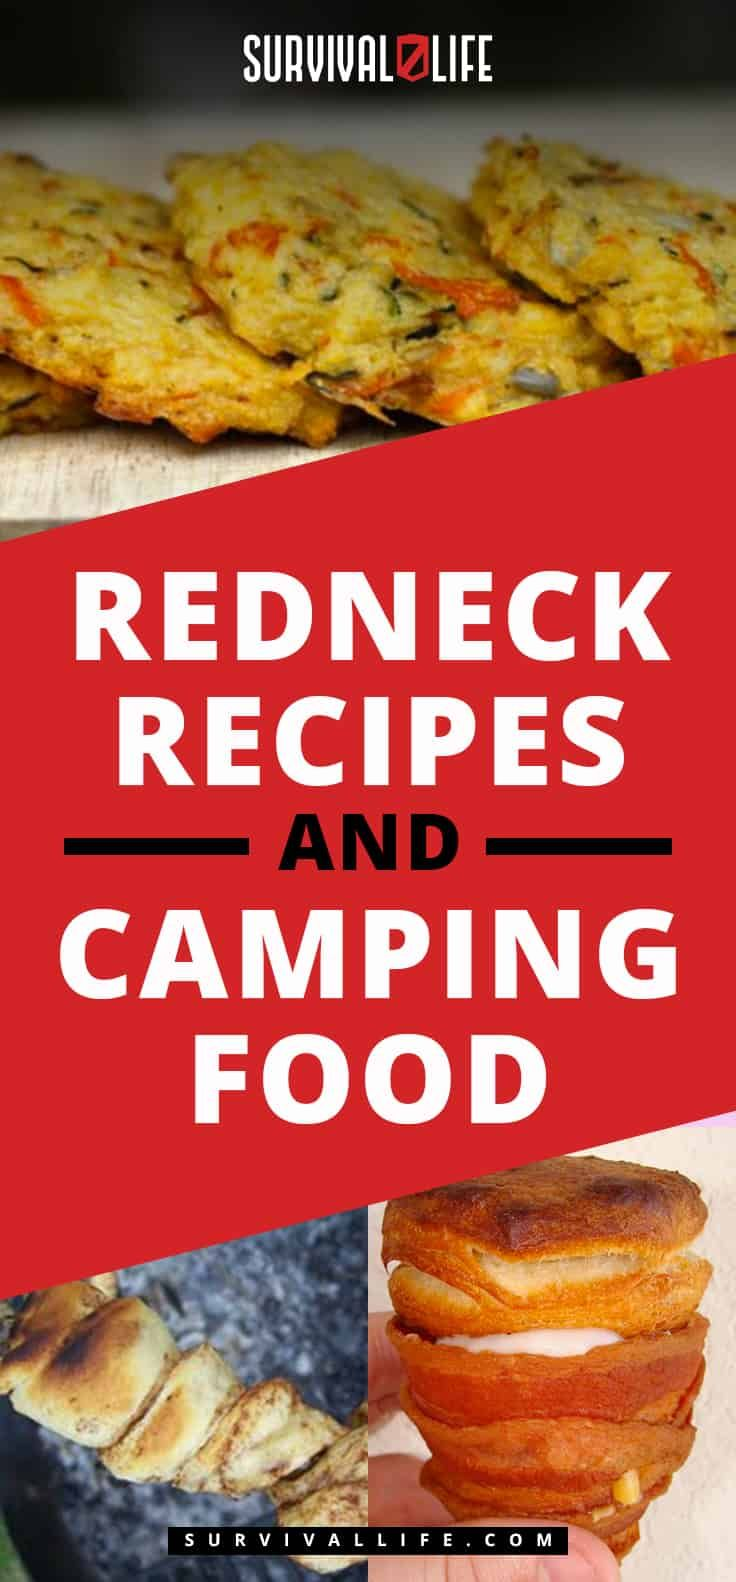 Camping Food |  Redneck Recipes and Camping Food